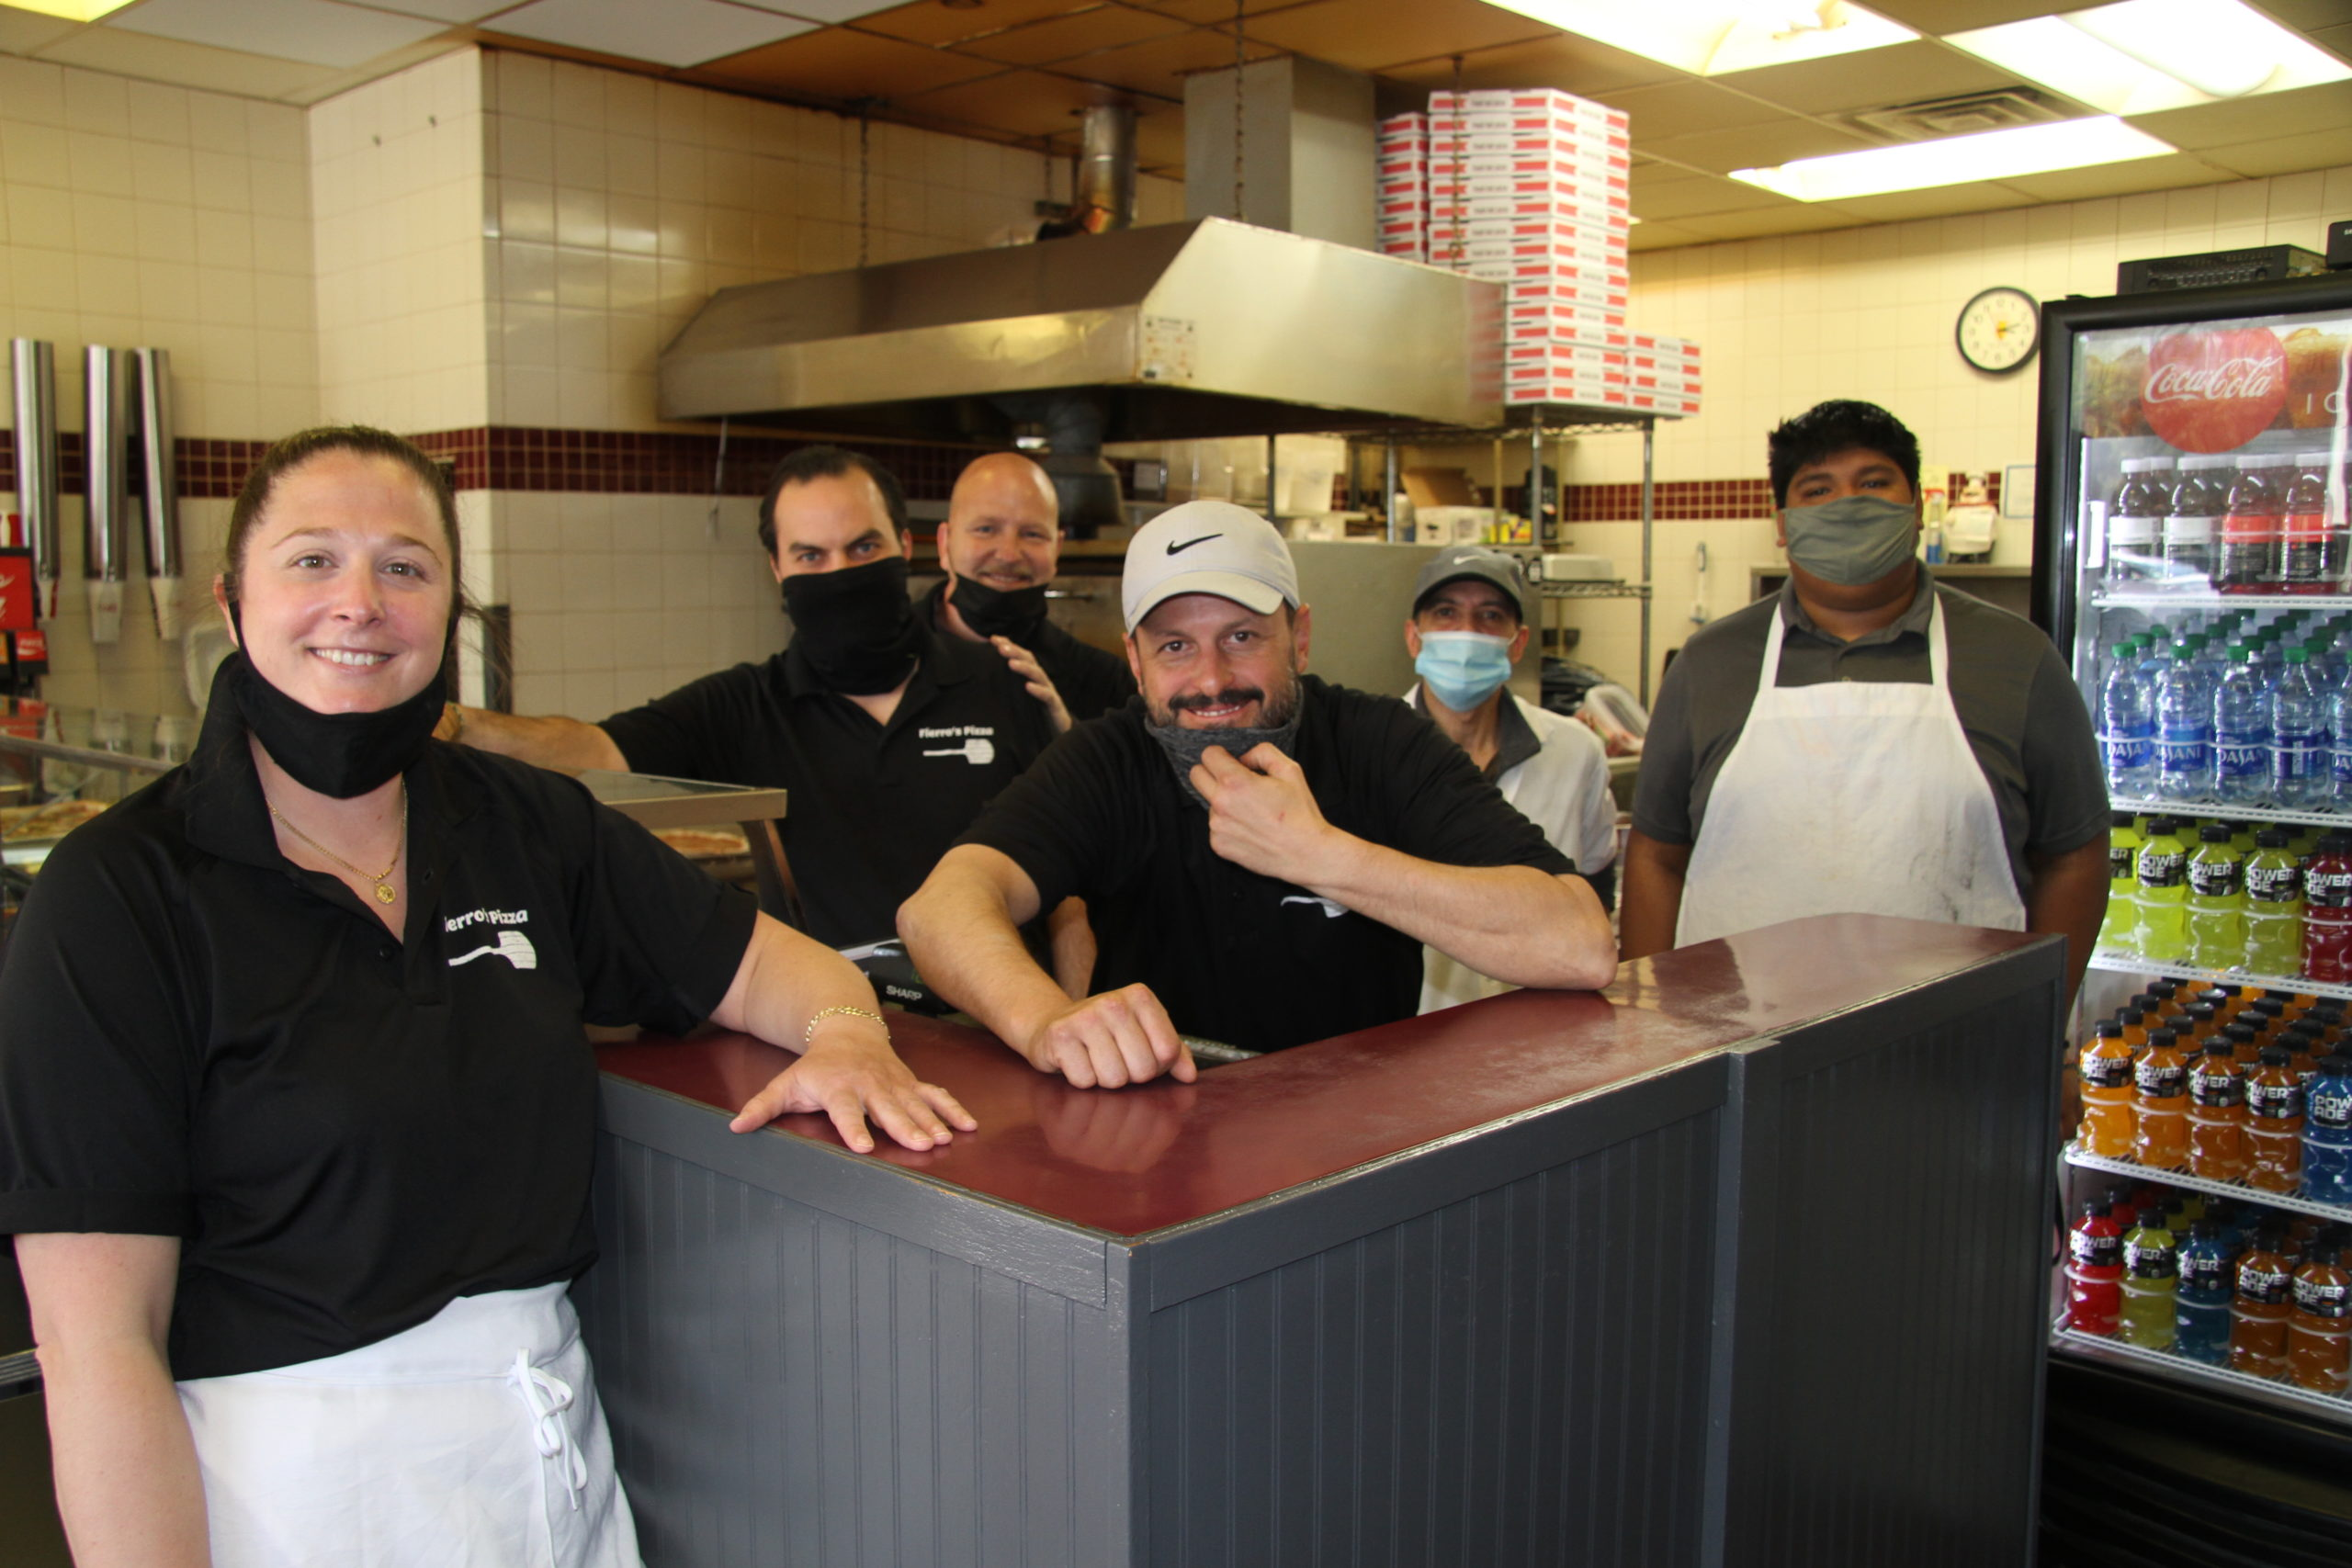 The crew of Fiero's Pizza in East Hampton welcomed two new partners, Emma Beudert and Joe Kastrati, this week.